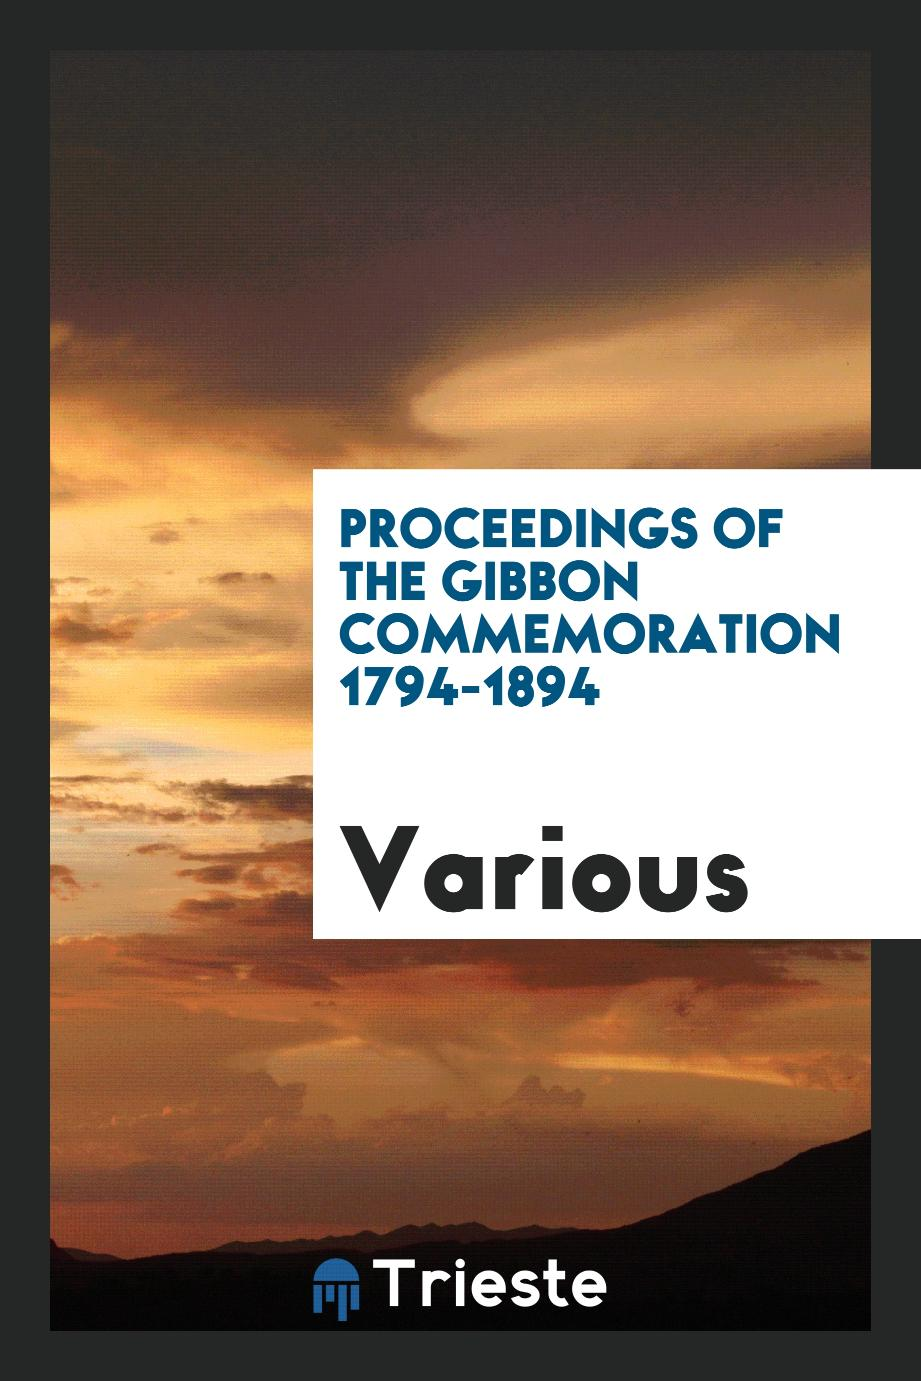 Proceedings of the Gibbon Commemoration 1794-1894